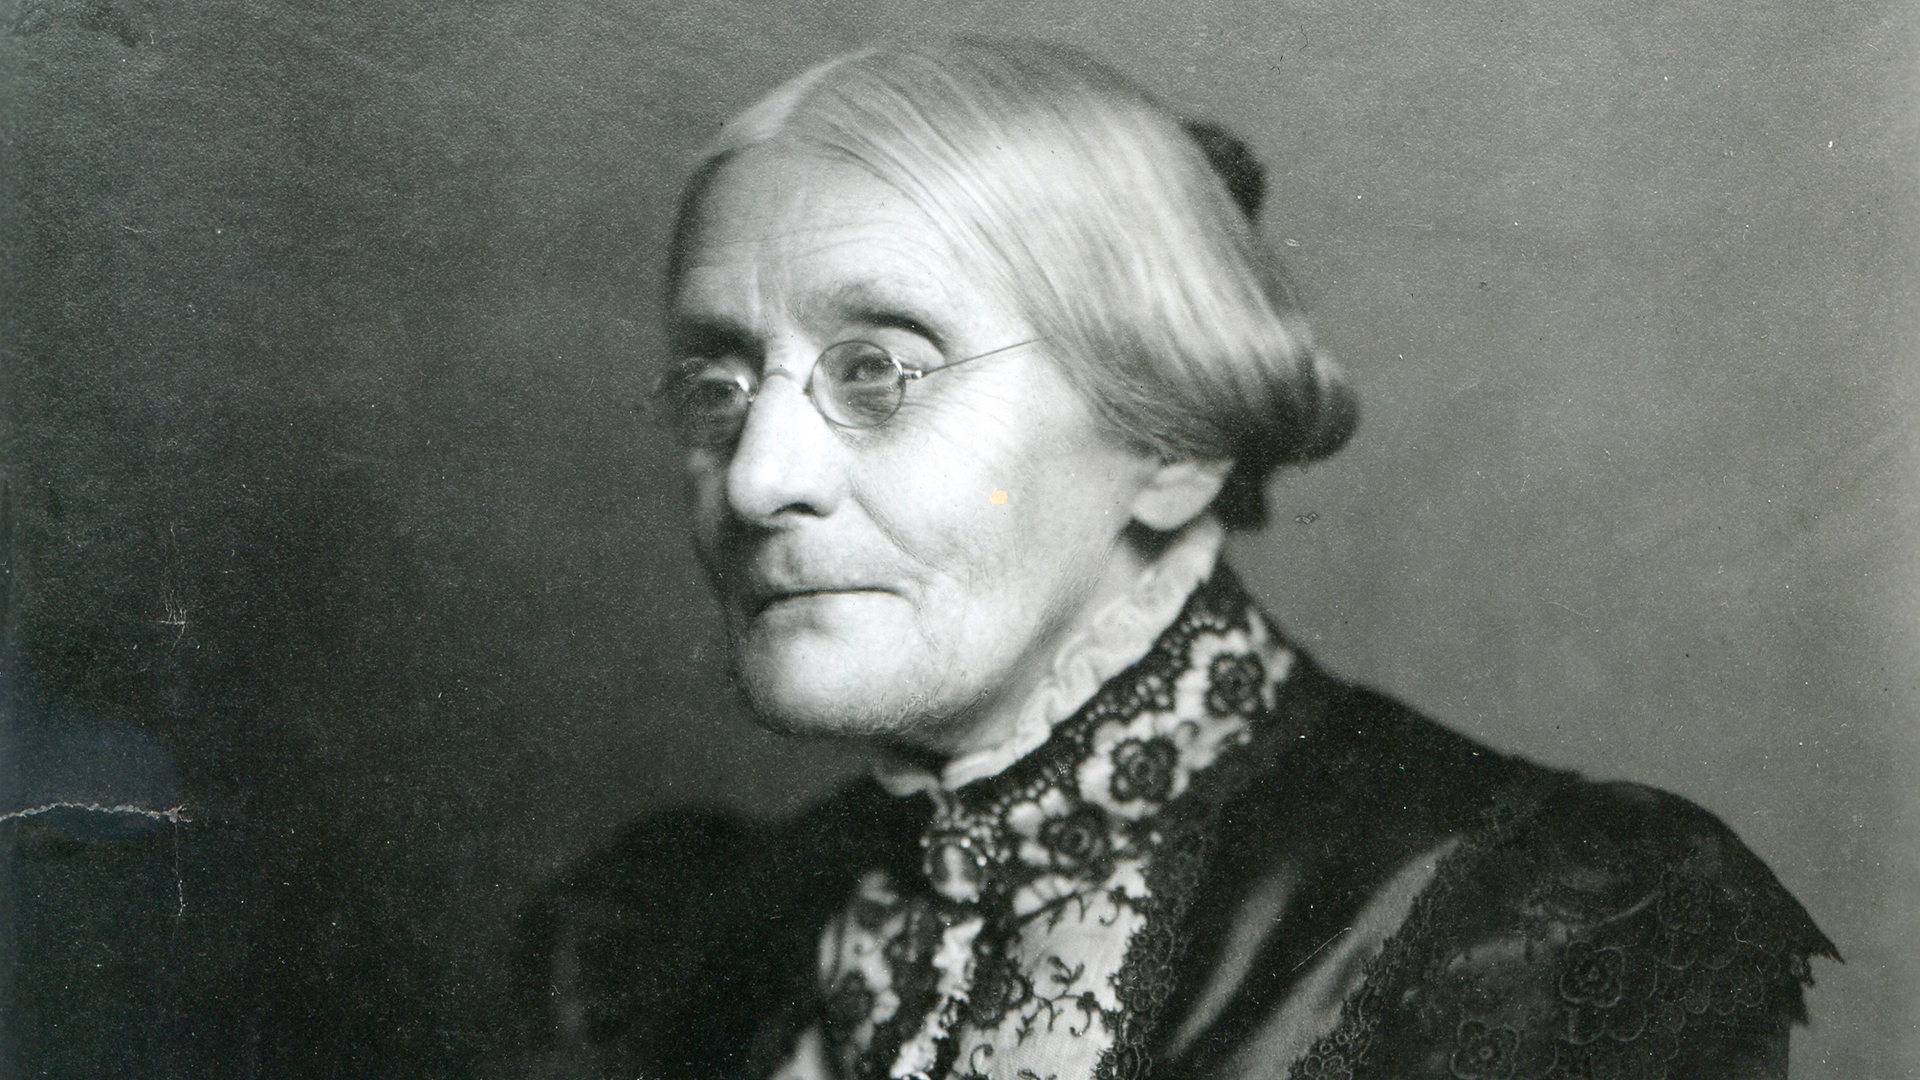 February 15, 1820: Susan B. Anthony Was Born and Grew up to Become a Women's Rights Movement Pioneer